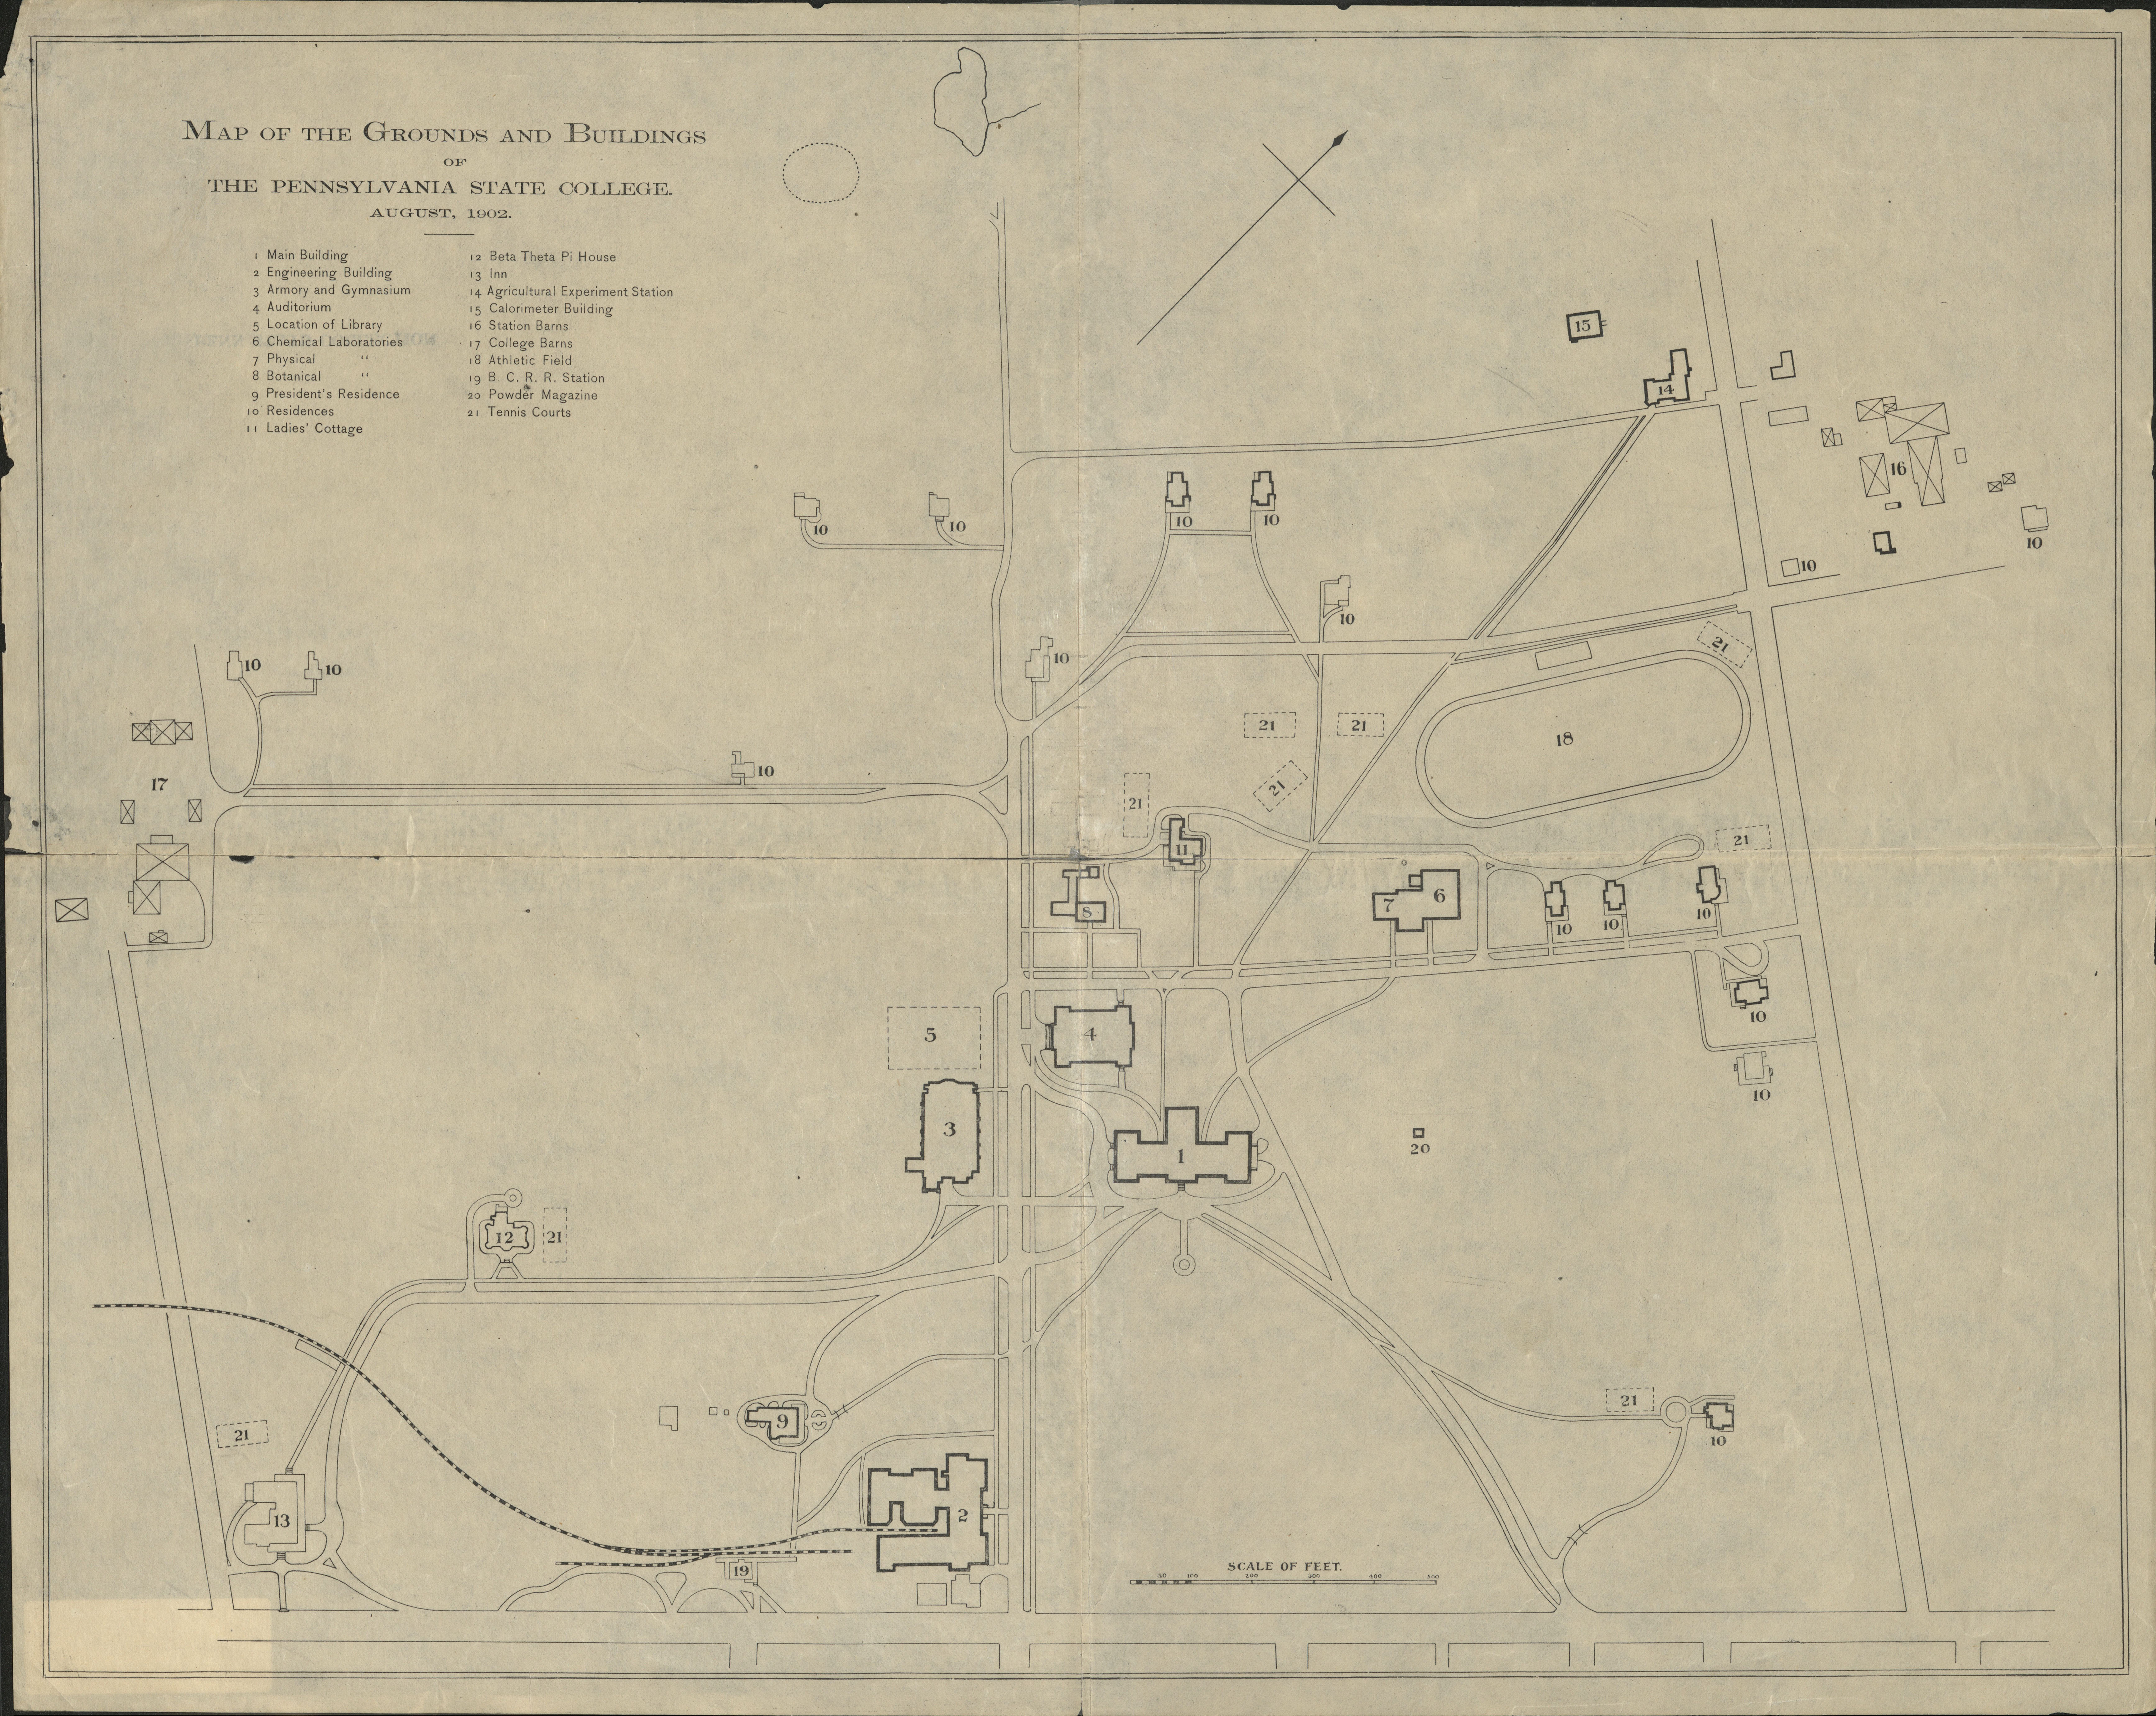 1902 PSU UP campus map